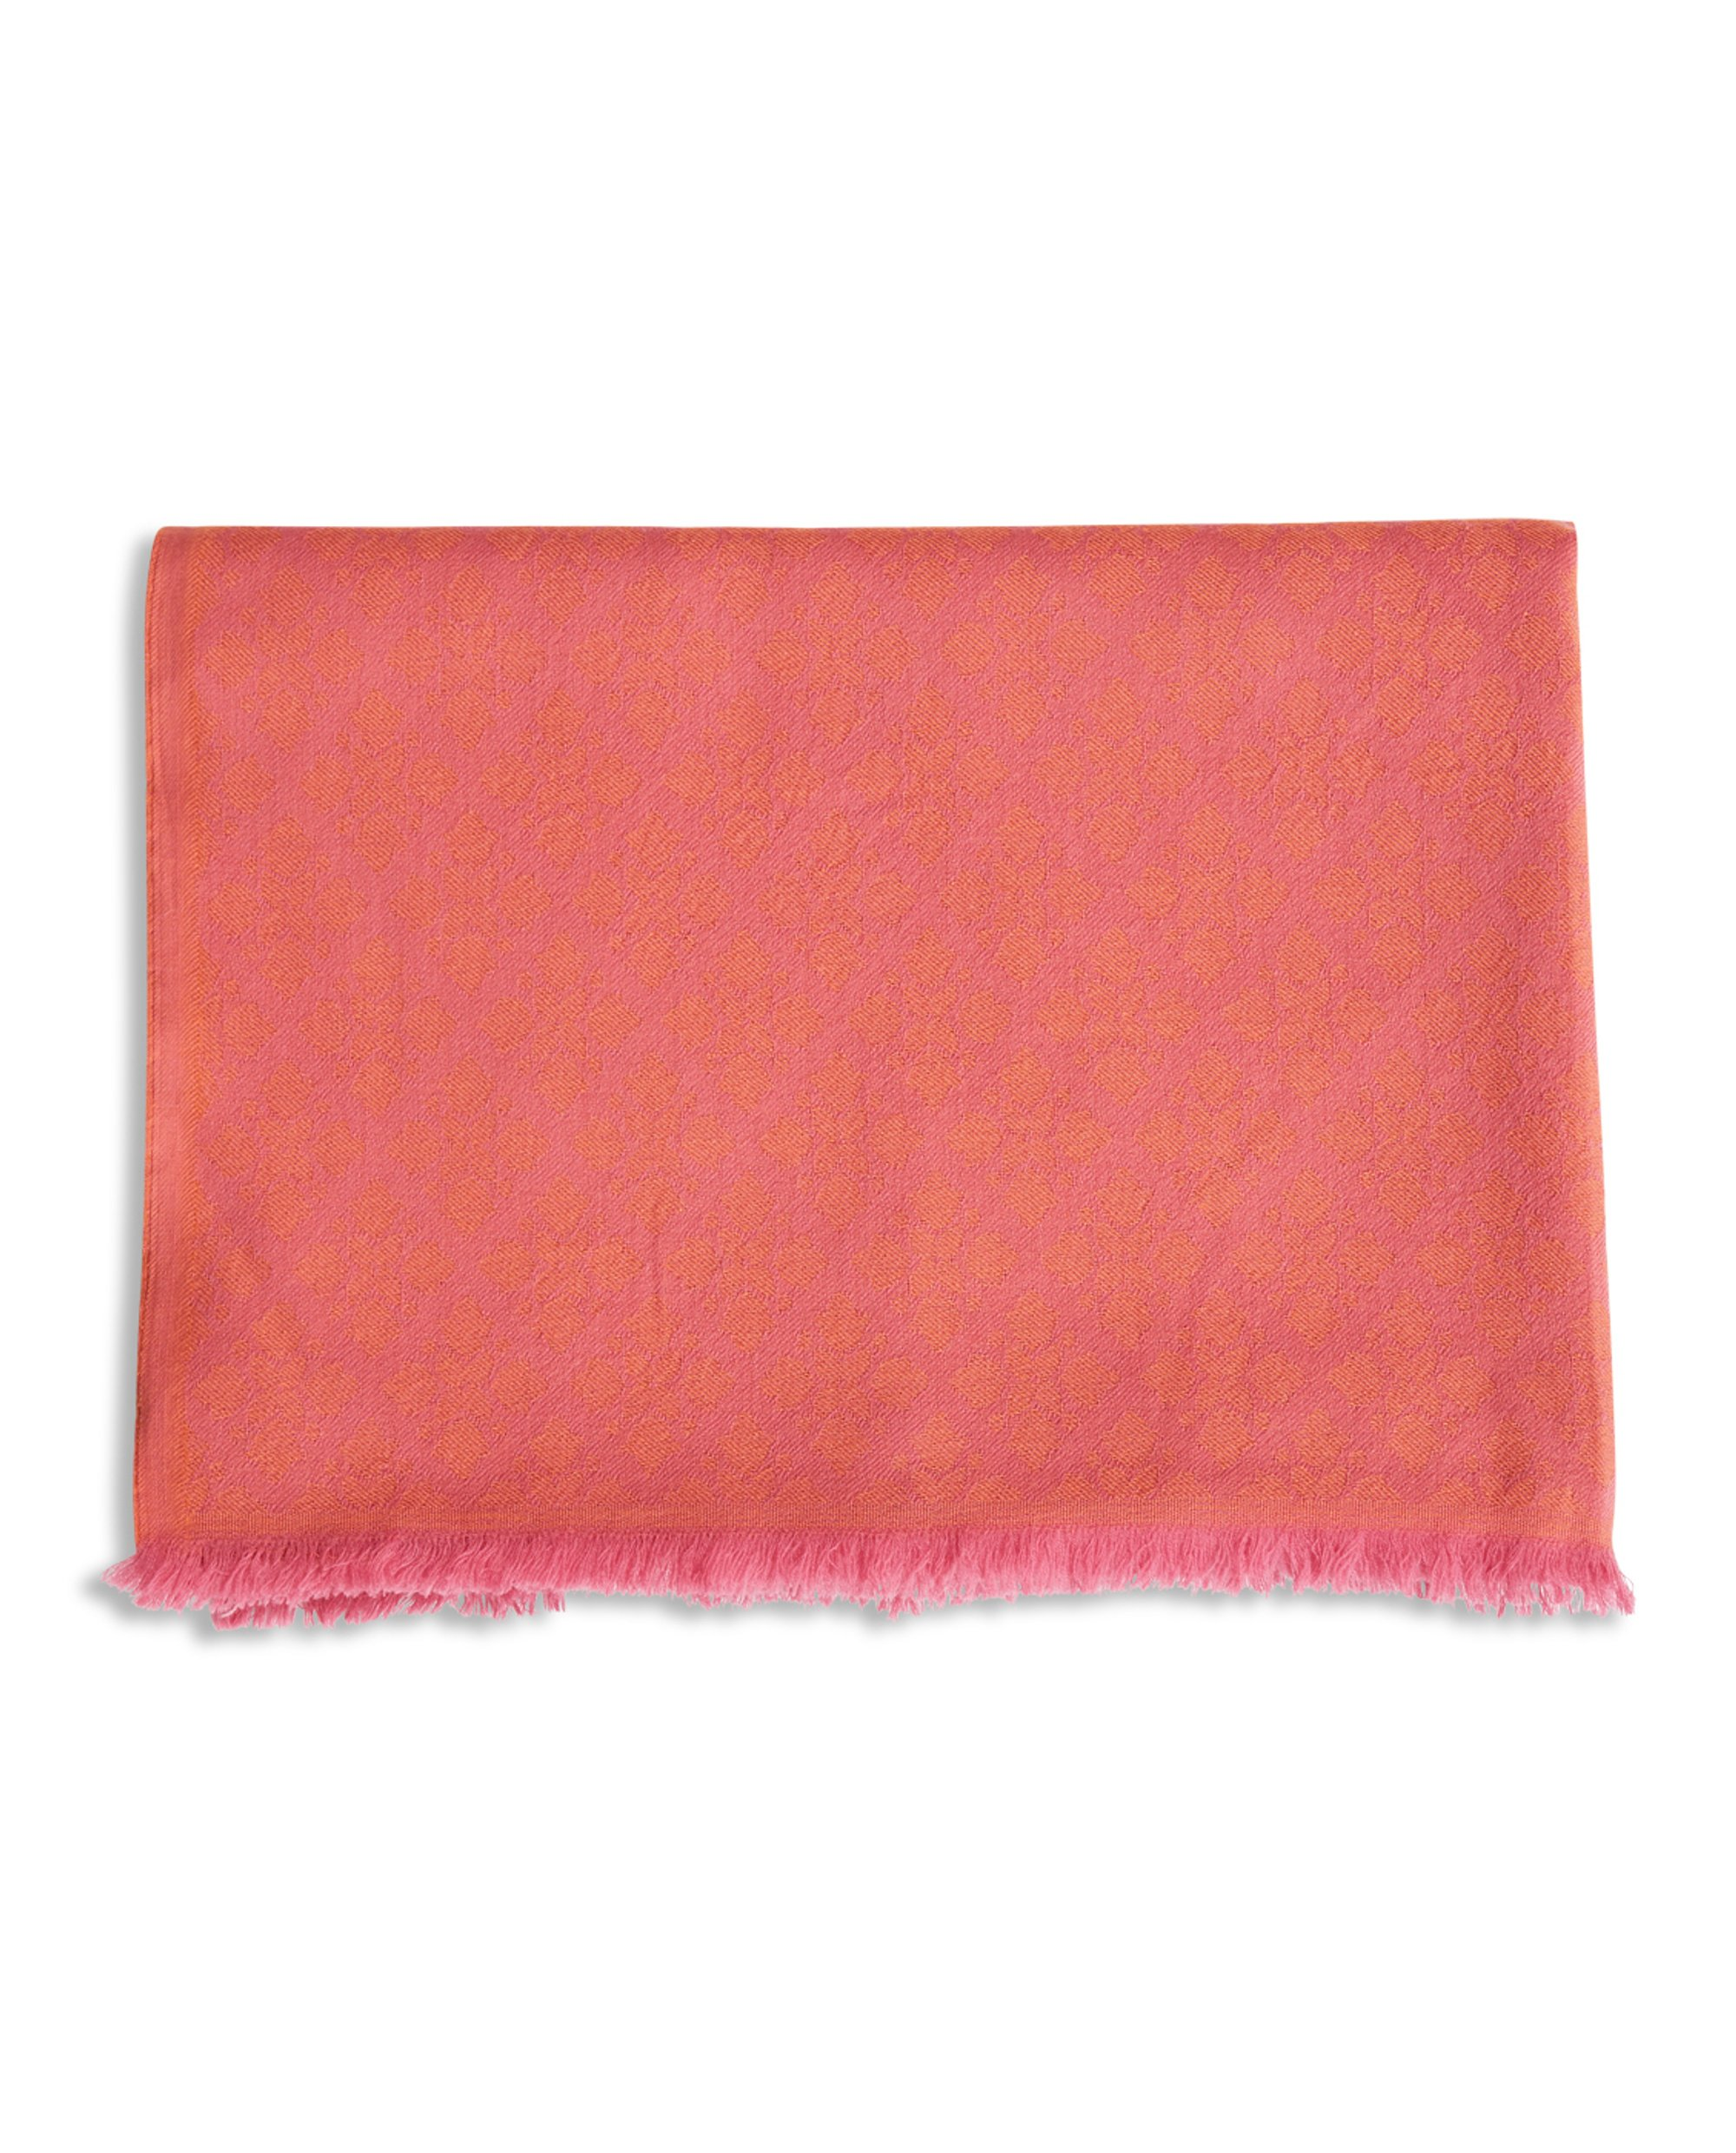 Bloom Jacquard Scarf, Pink Multi